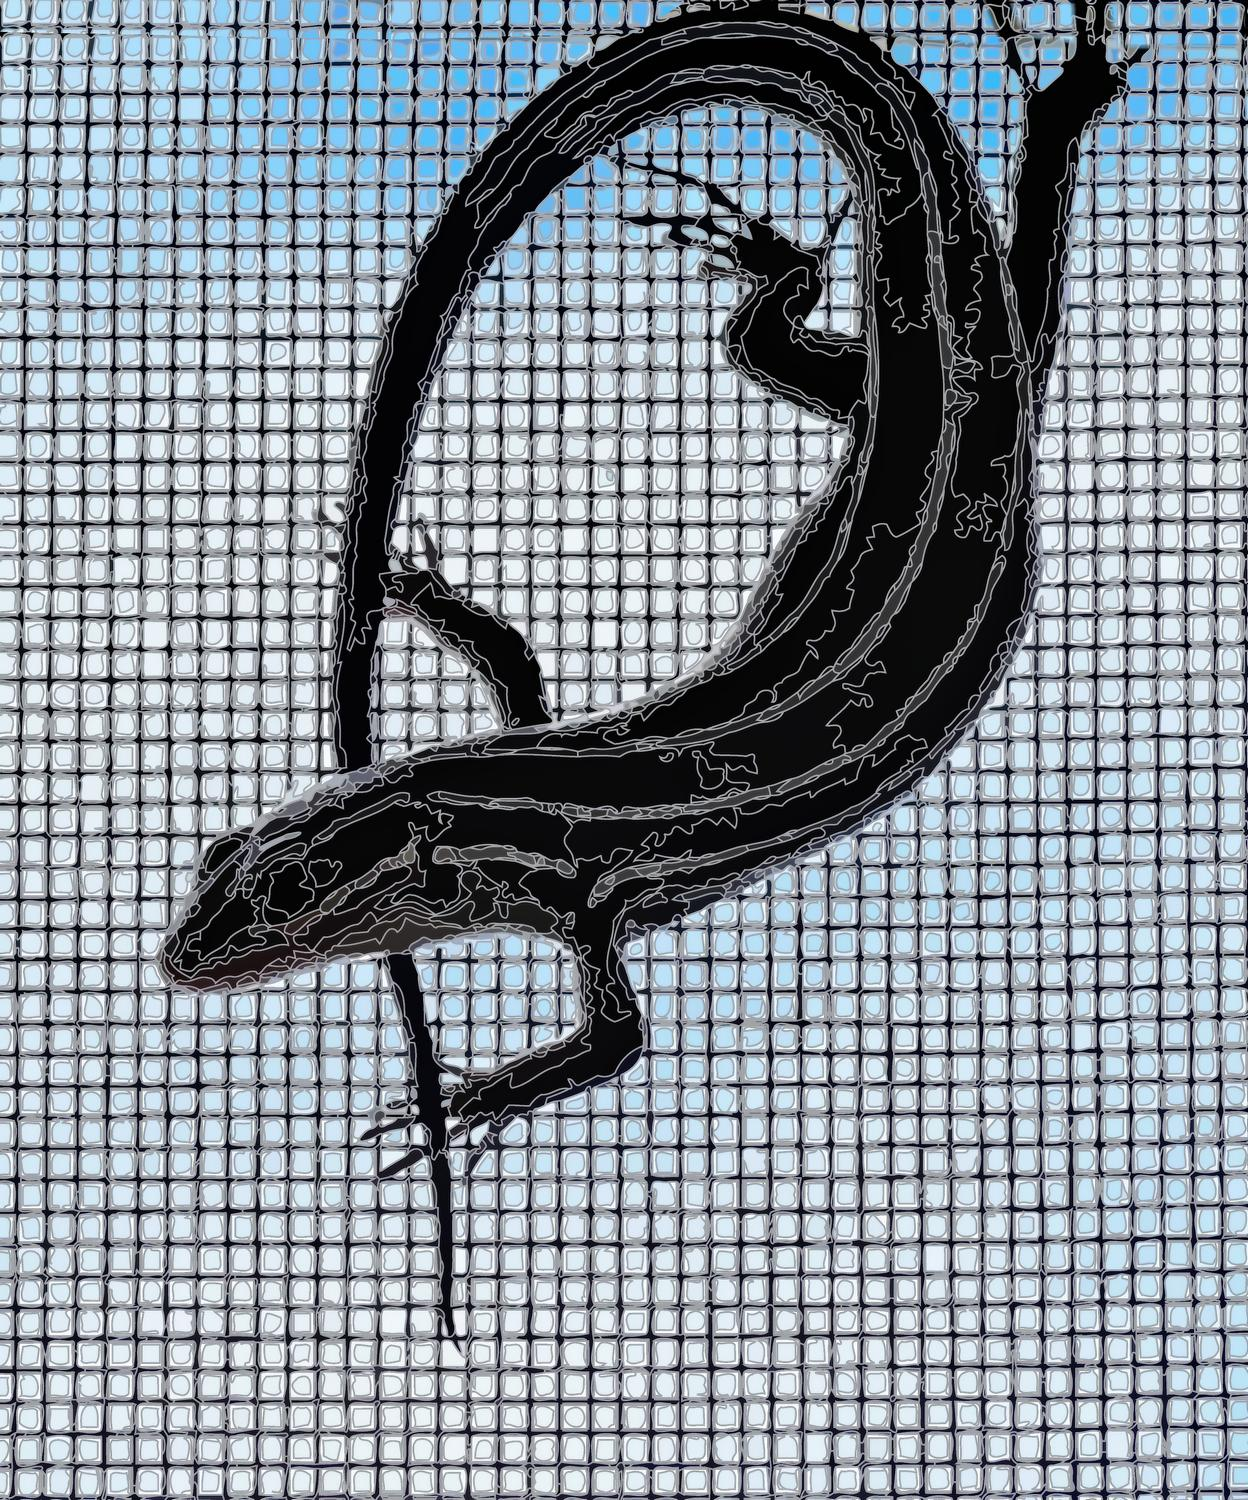 - Here's the skink, rendered into PostScript,<br> and now just lines and shapes. - Leica C (typ 112) - Panasonic DMC-LF1 - five-lined skink - - - art  - photography - by Tony Karp